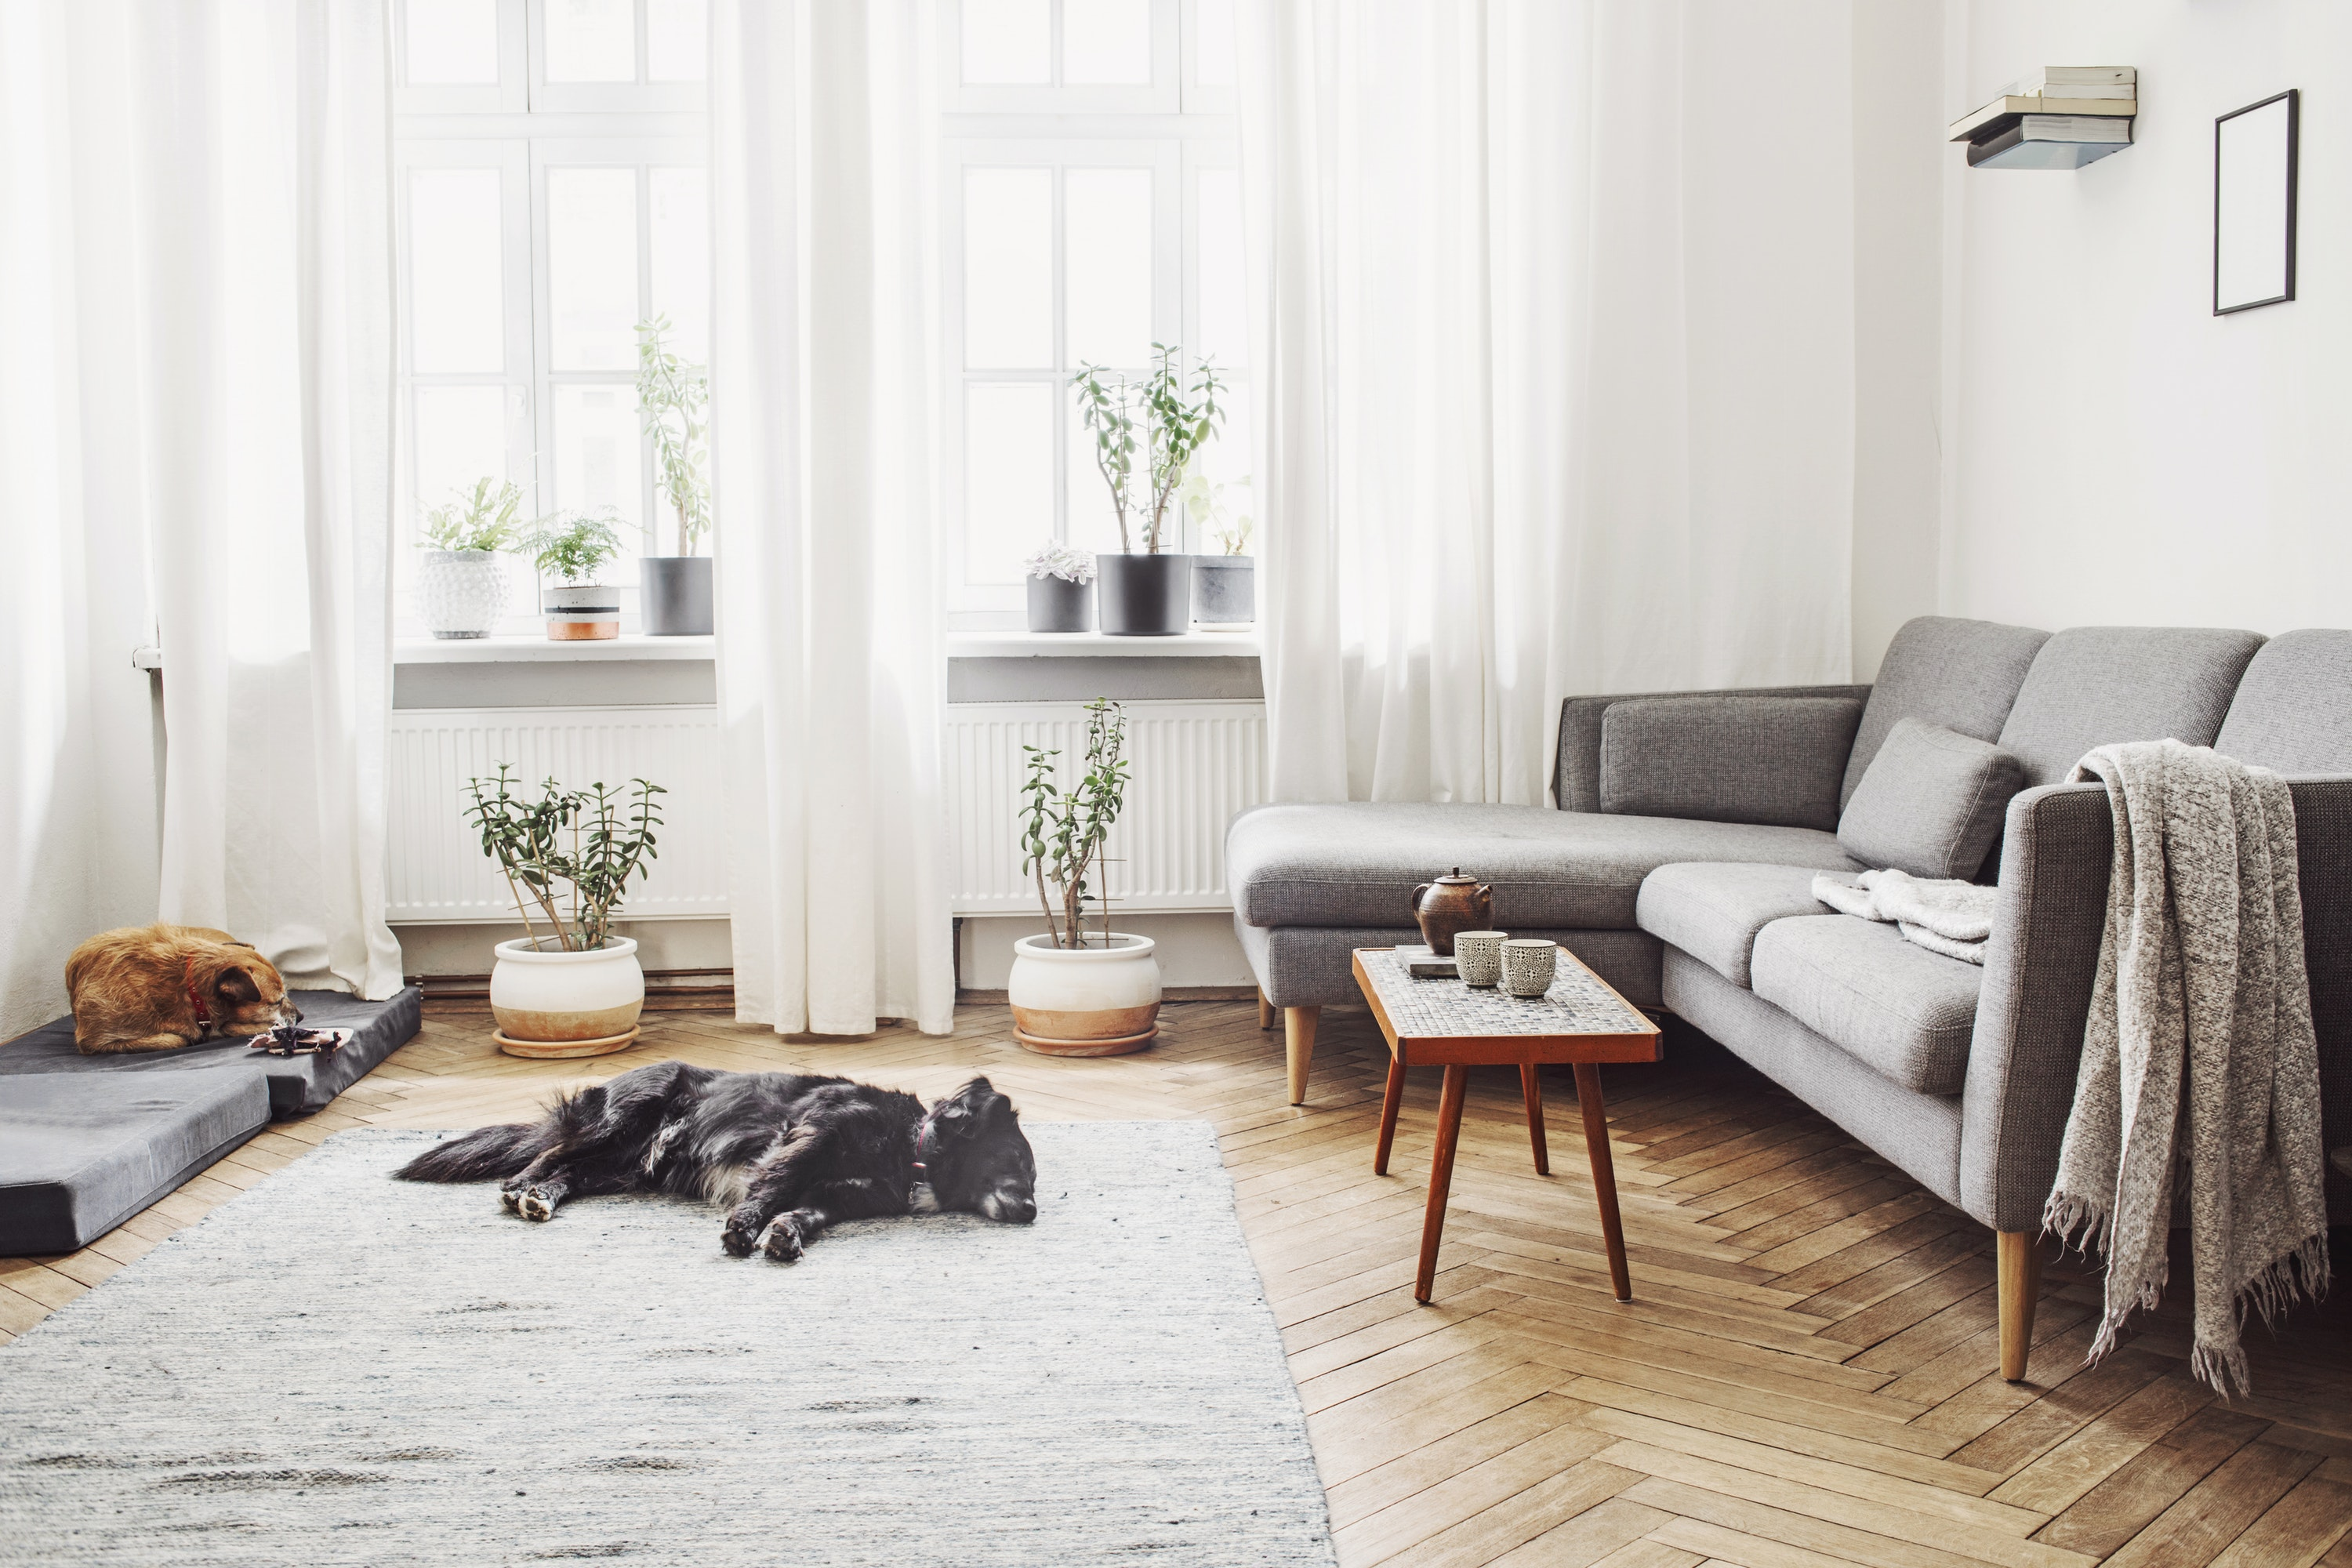 Who doesn't love a light and airy space?